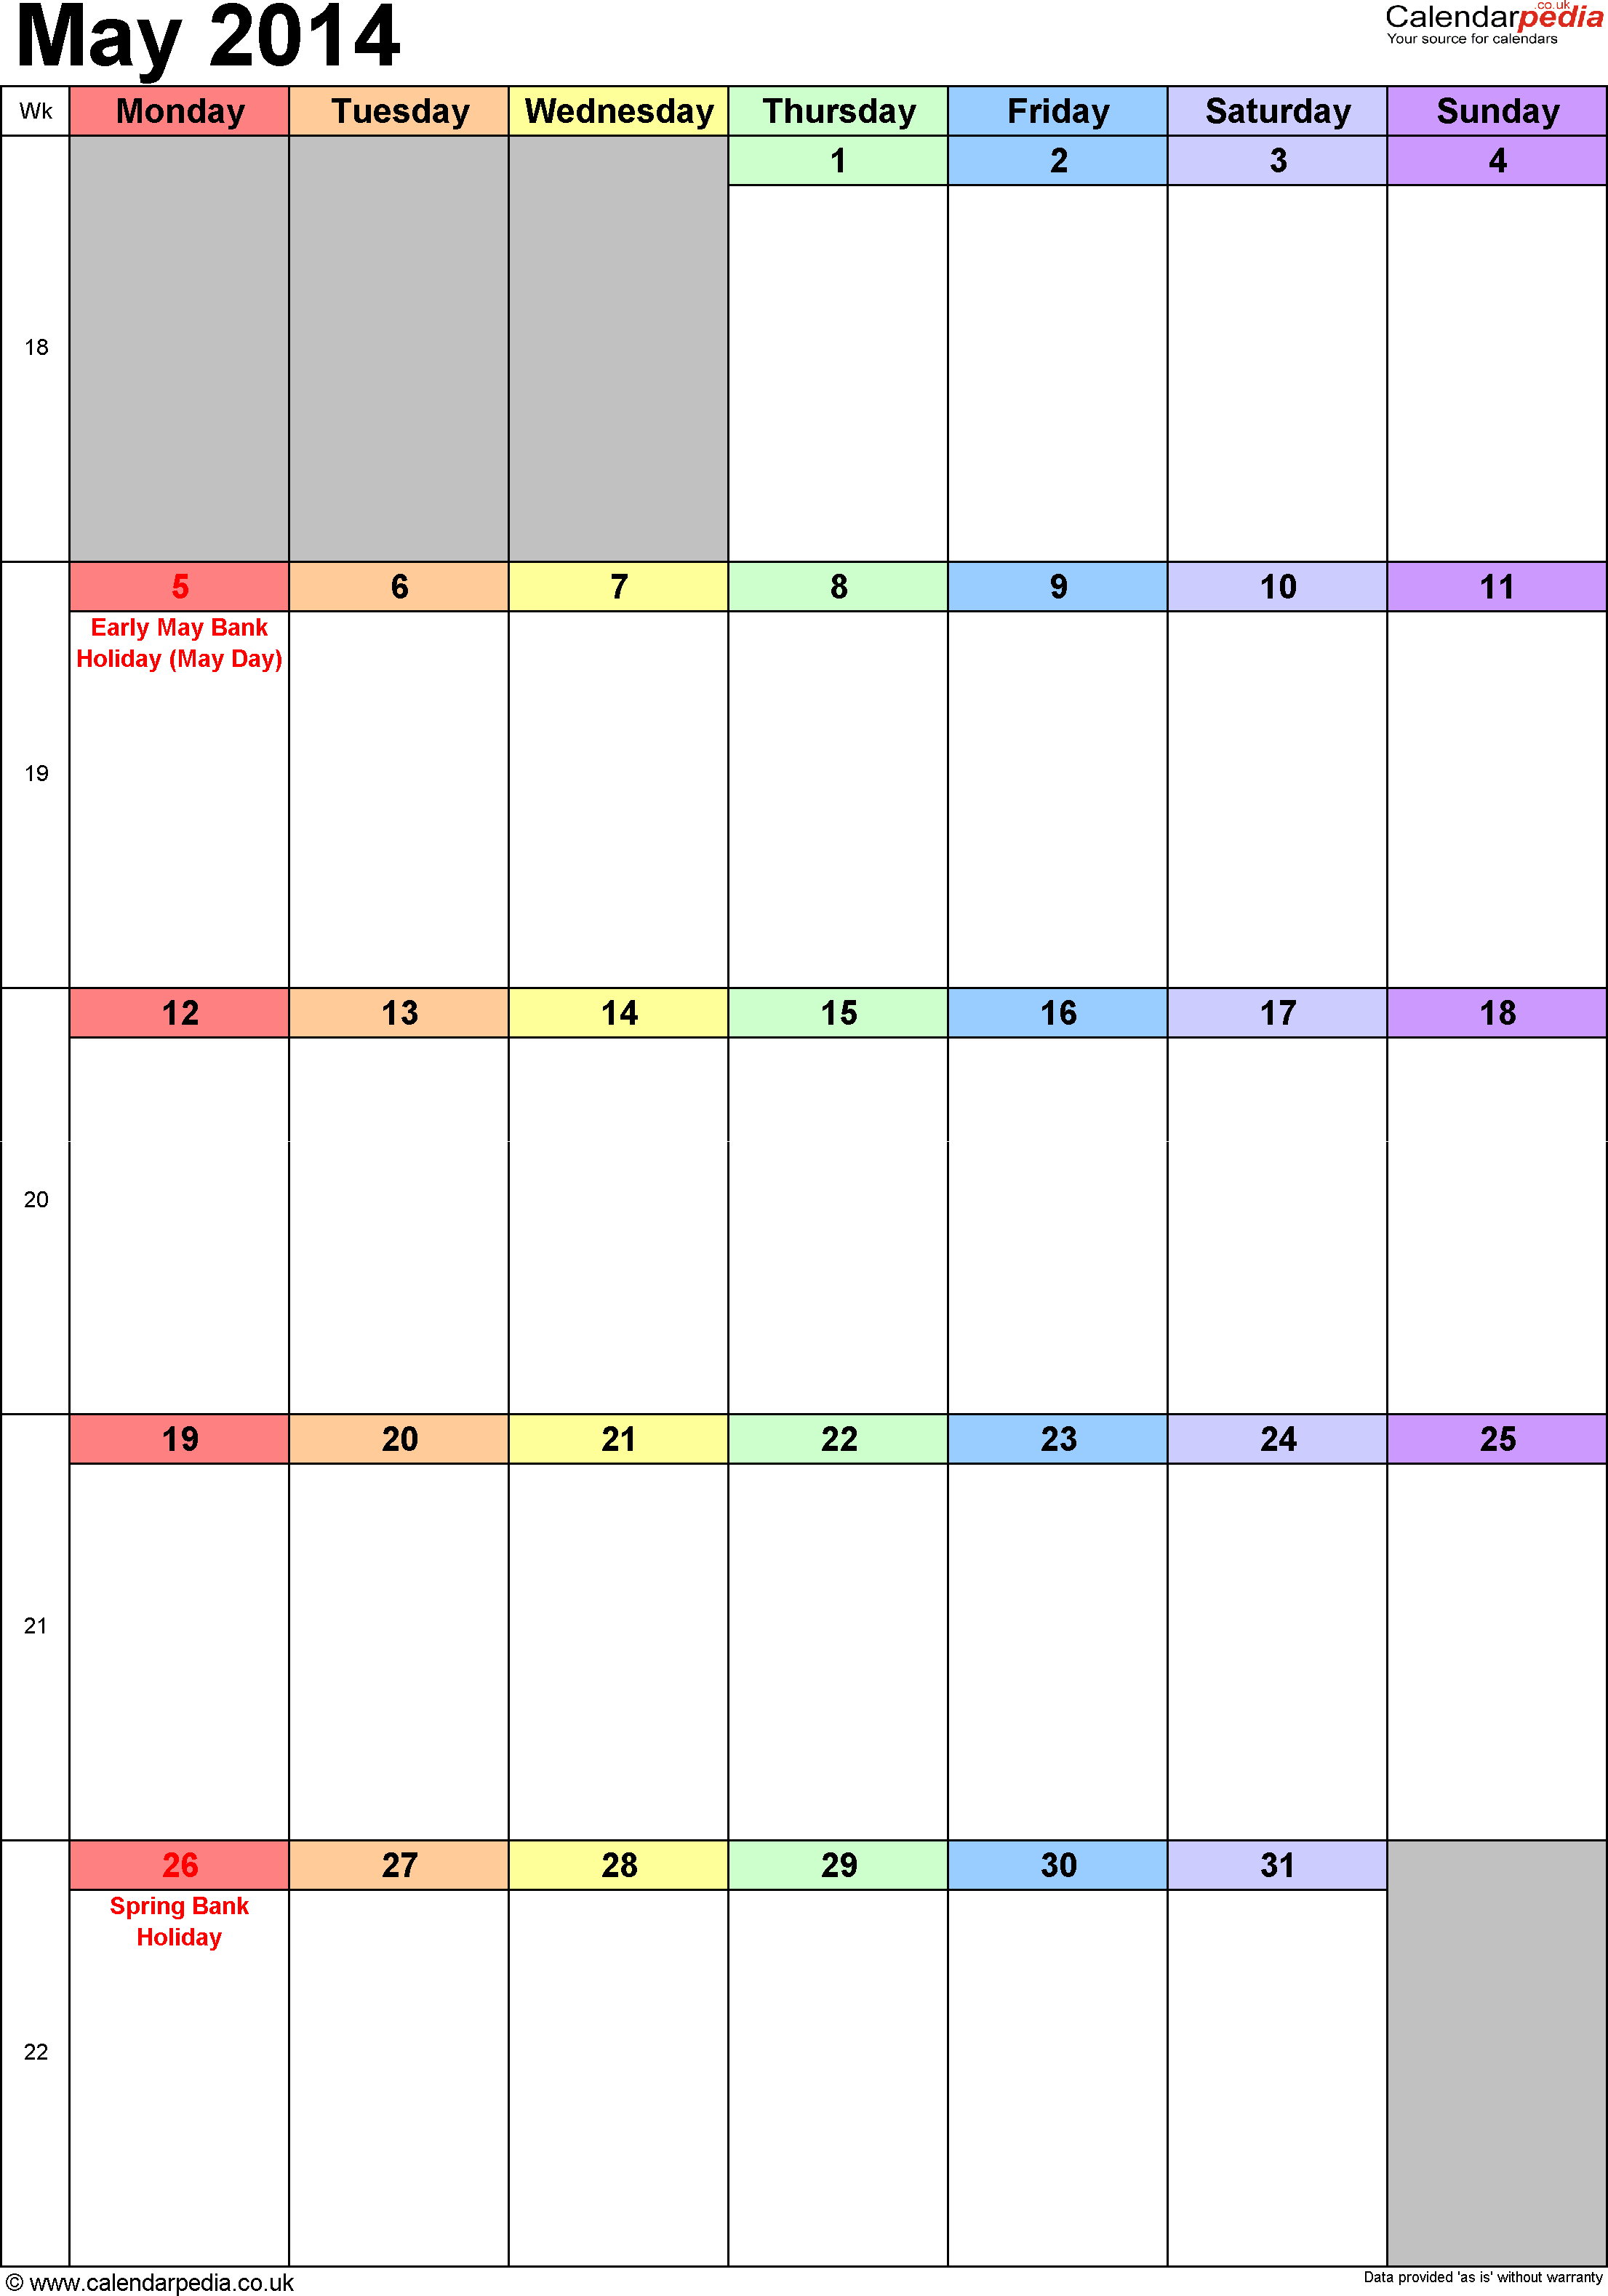 Calendar May 2014 portrait orientation, 1 page, with UK bank holidays and week numbers